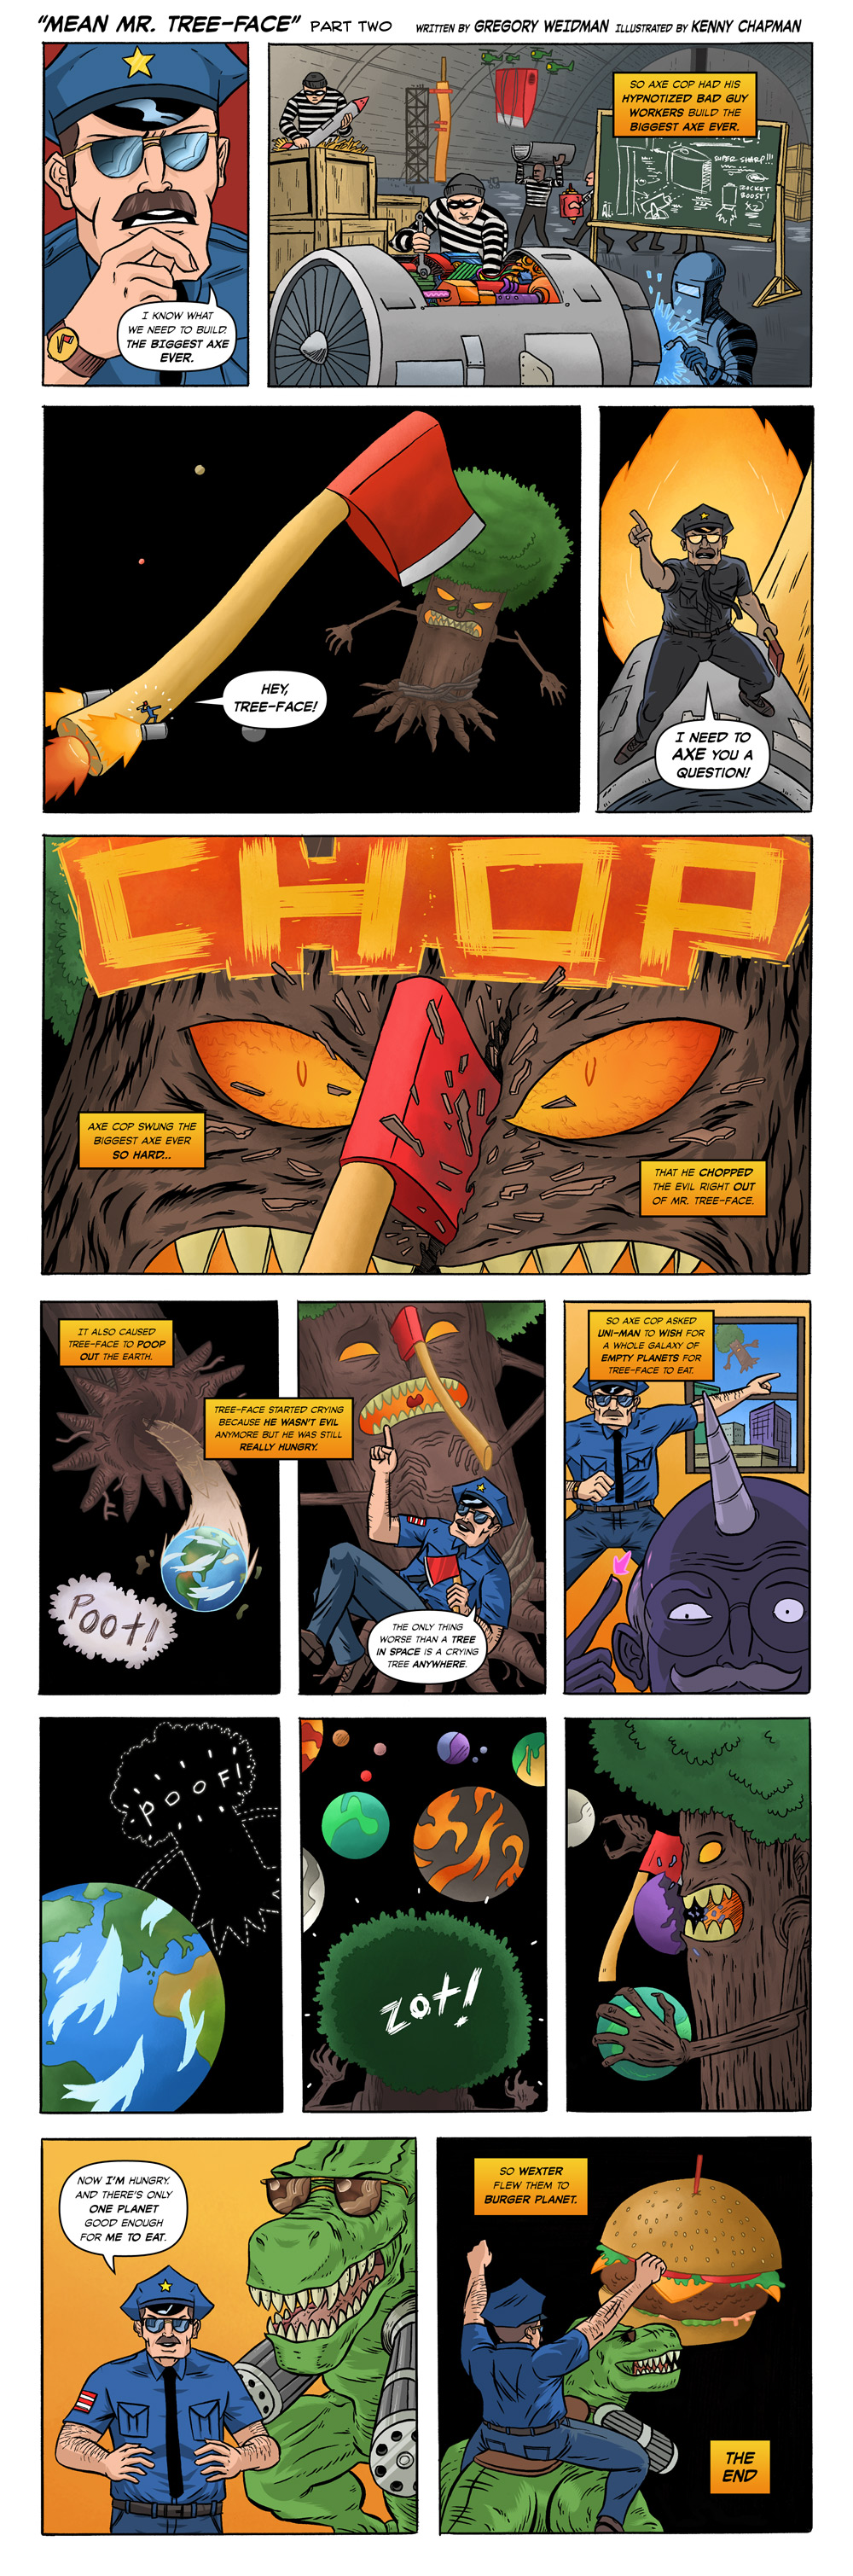 Axe Cop Guest Episode #34